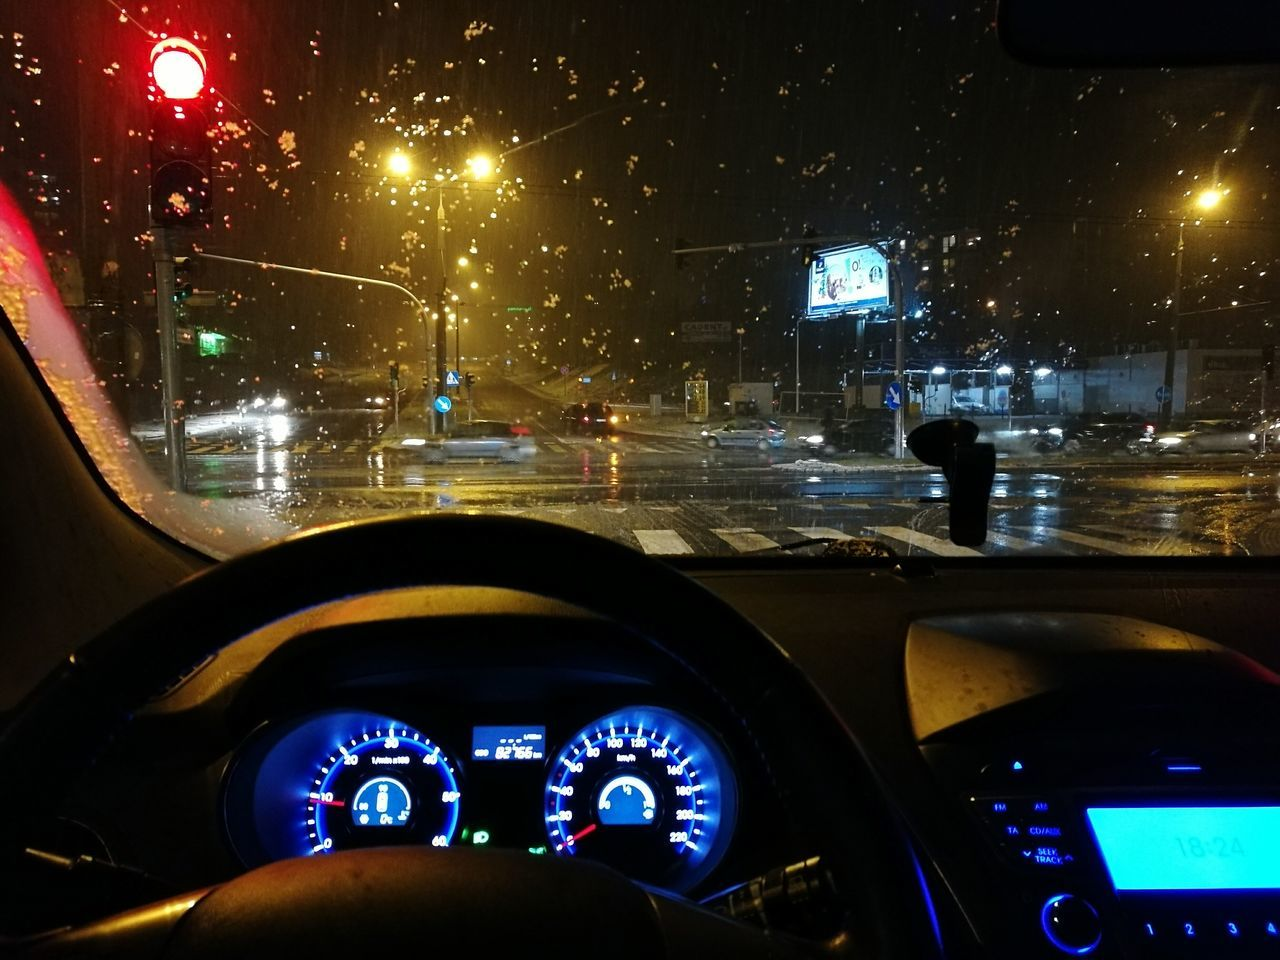 snow Transportation Car Dashboard Car Interior Vehicle Interior Mode Of Transport Illuminated Speedometer Night Windshield Land Vehicle Steering Wheel Control Panel Meter - Instrument Of Measurement No People Gauge Road City Close-up Technology